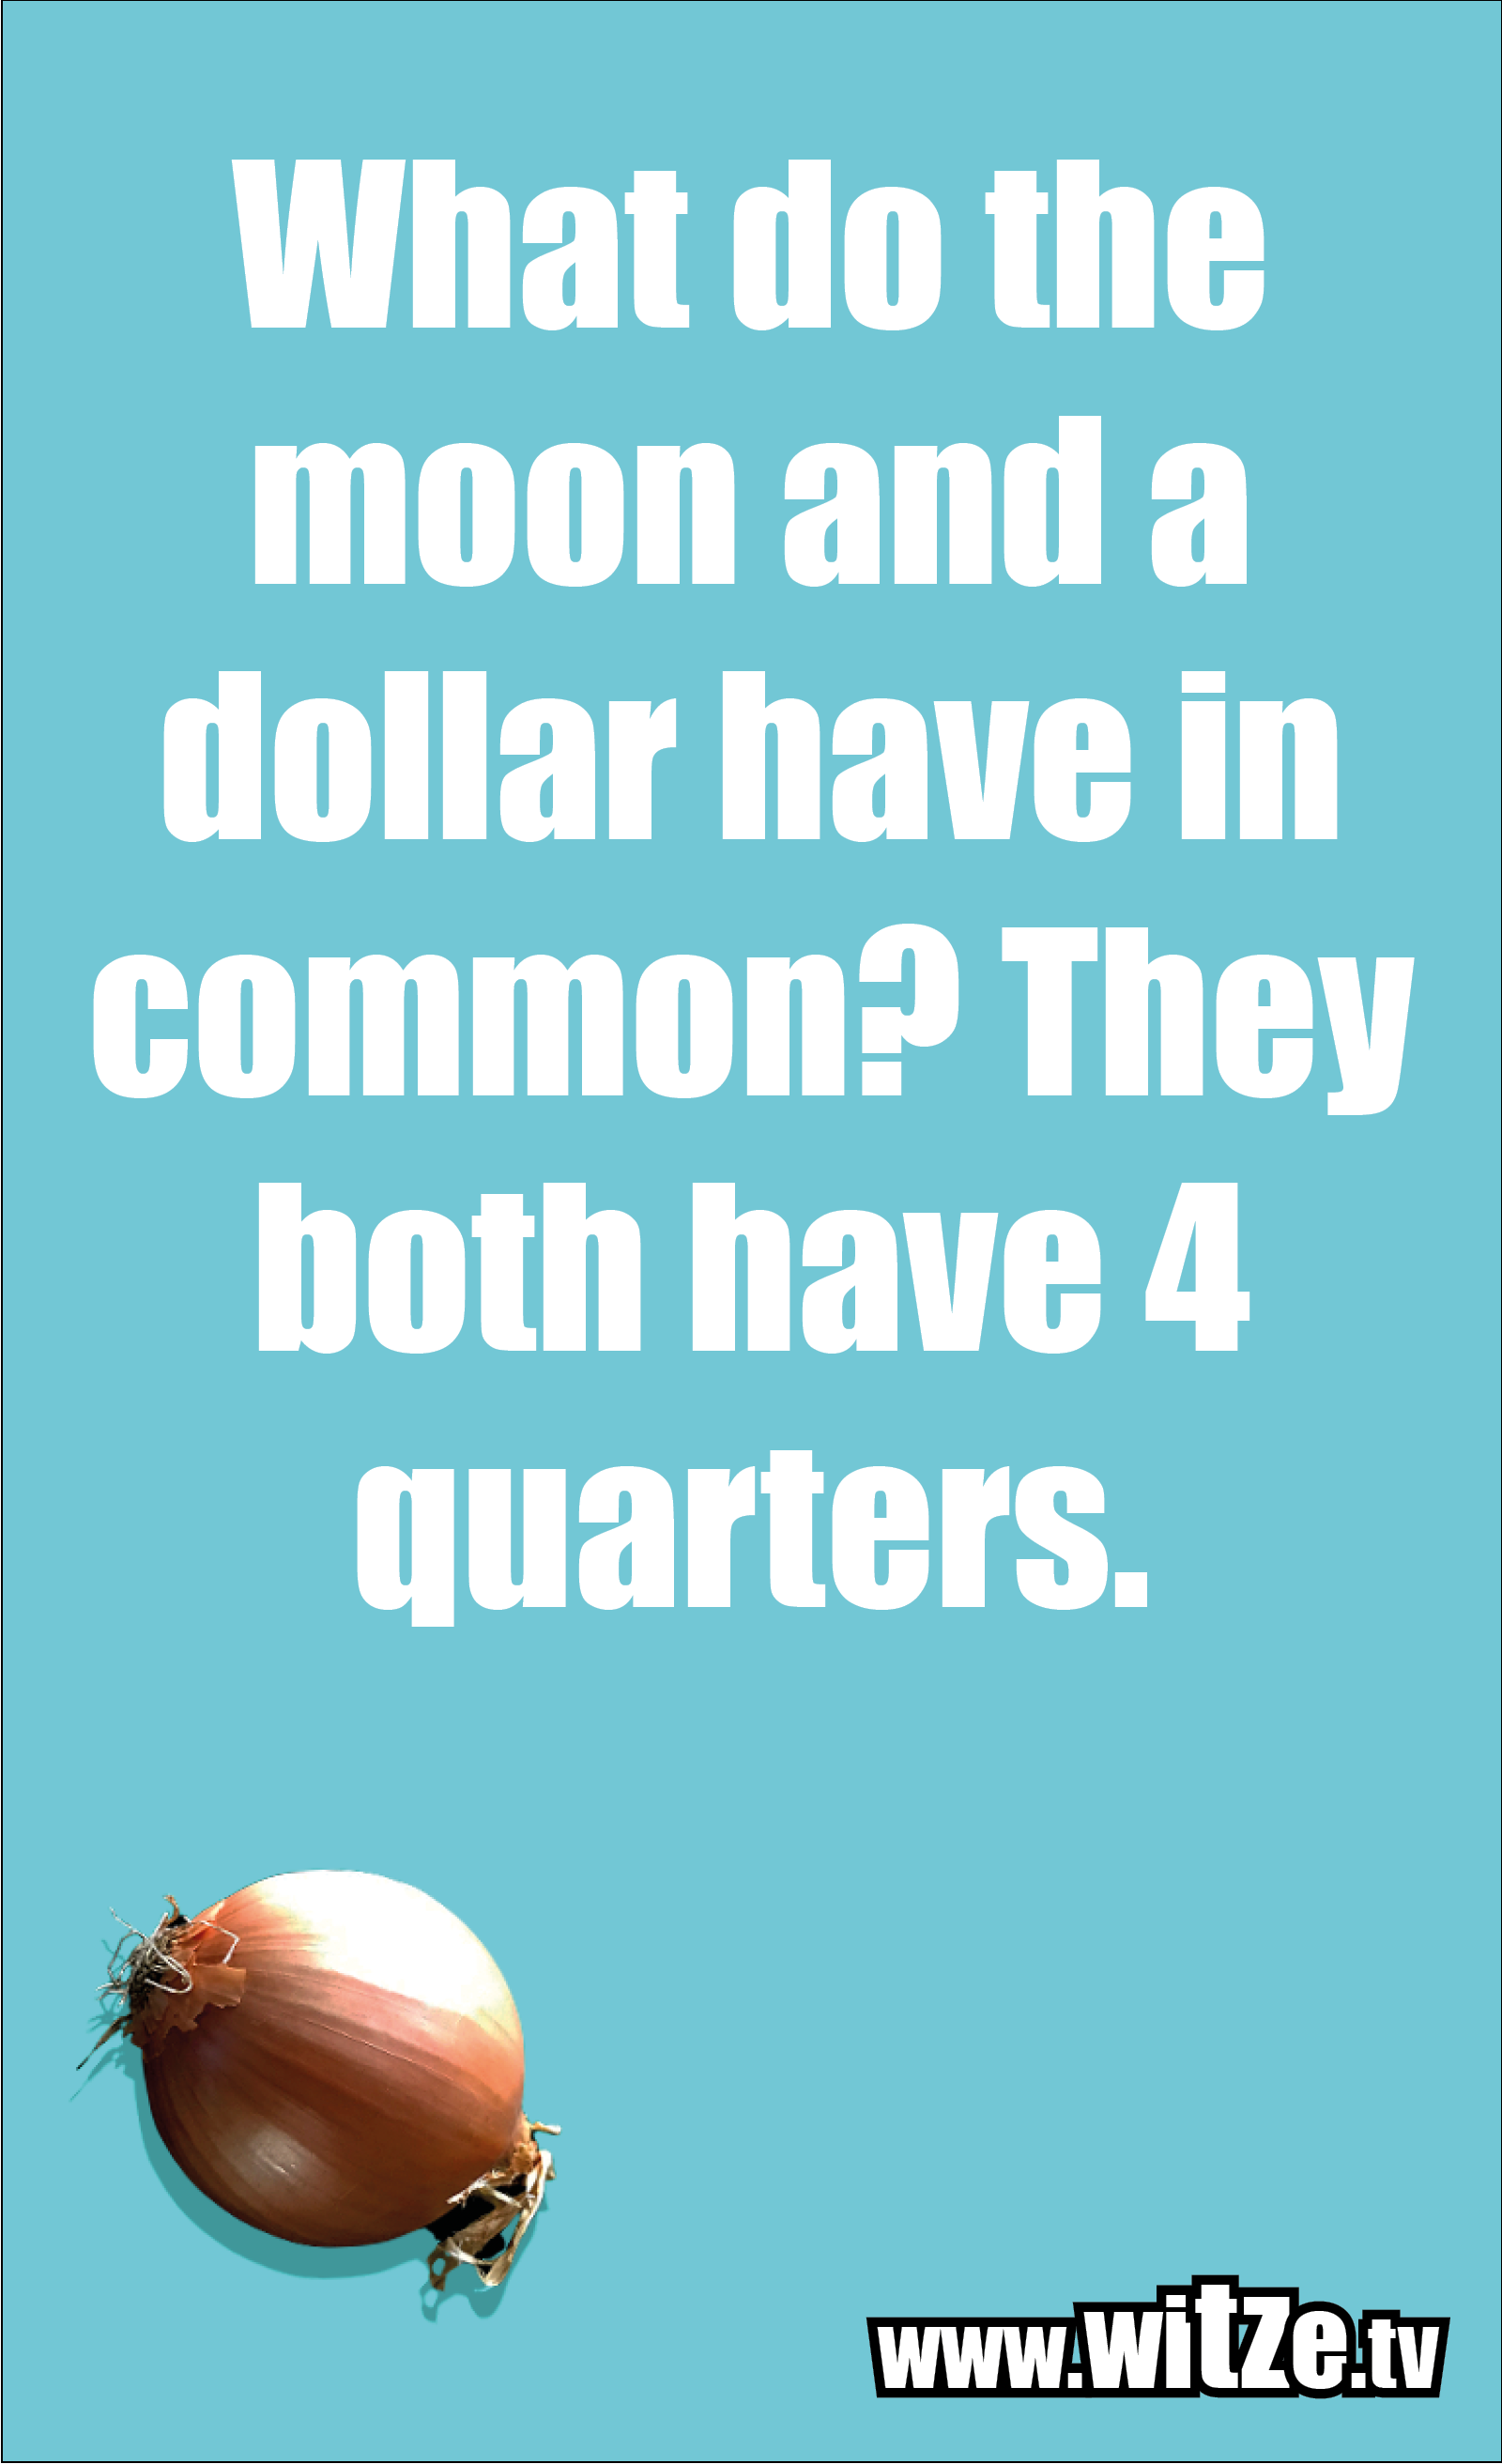 Math joke… What do the moon and a dollar have in common? They both have 4 quarters.